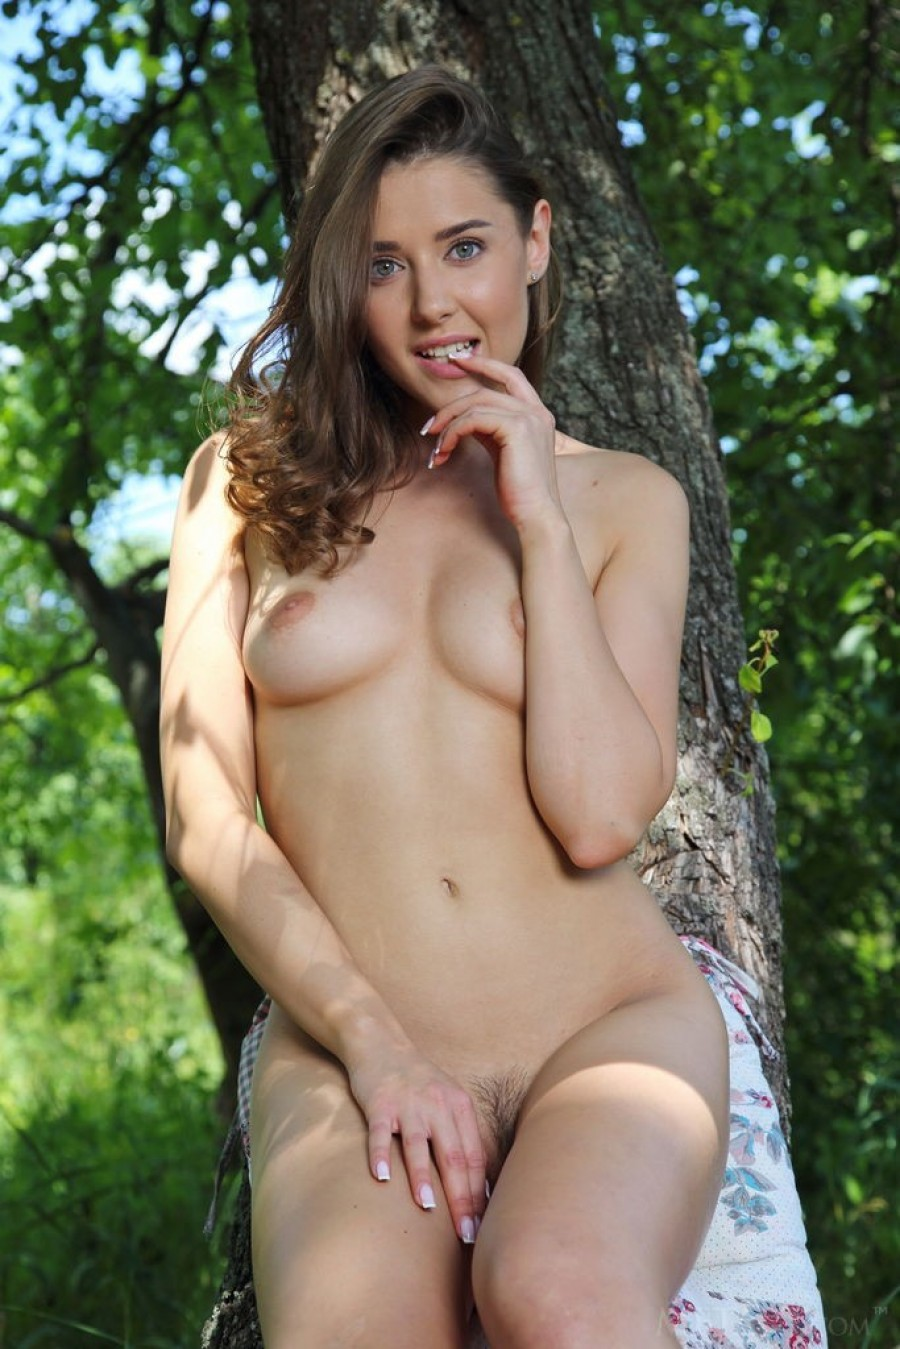 A naked picnic in the woods